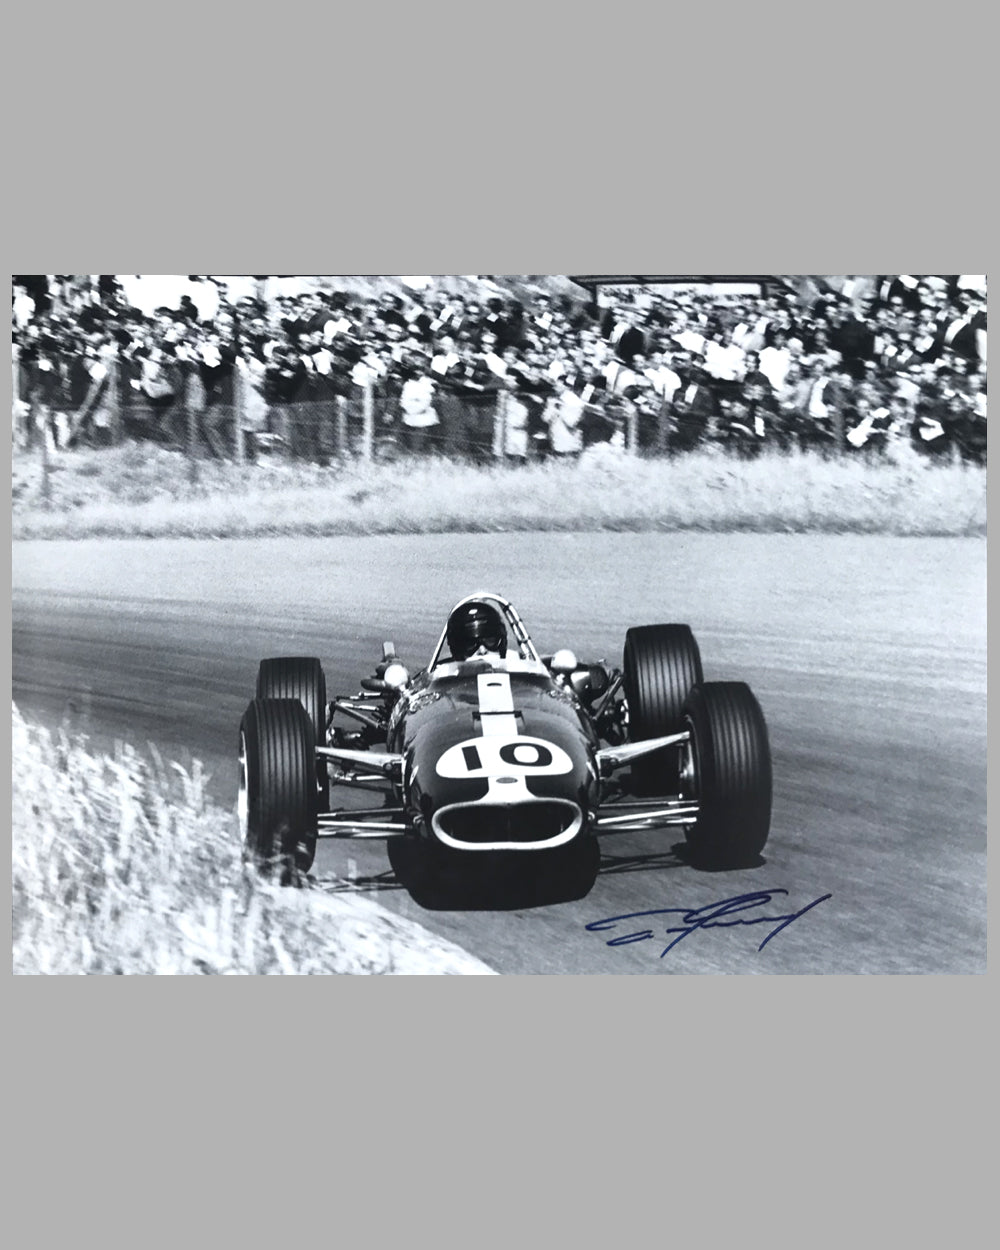 Dan Gurney autographed photograph in his Eagle Weslake VMK1 V12 Formula 1 car